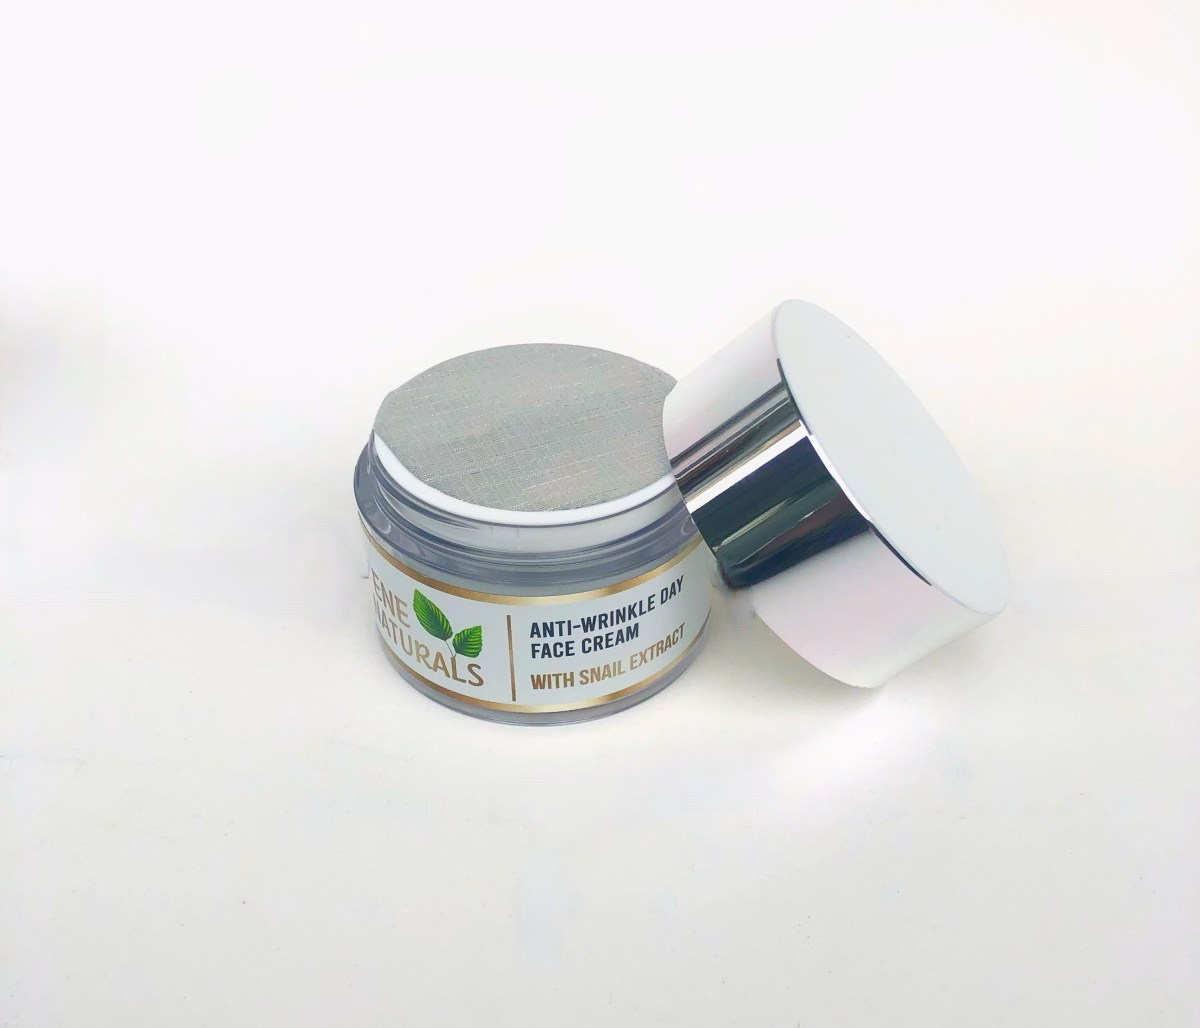 anti-wrinkle face cream with snail extract